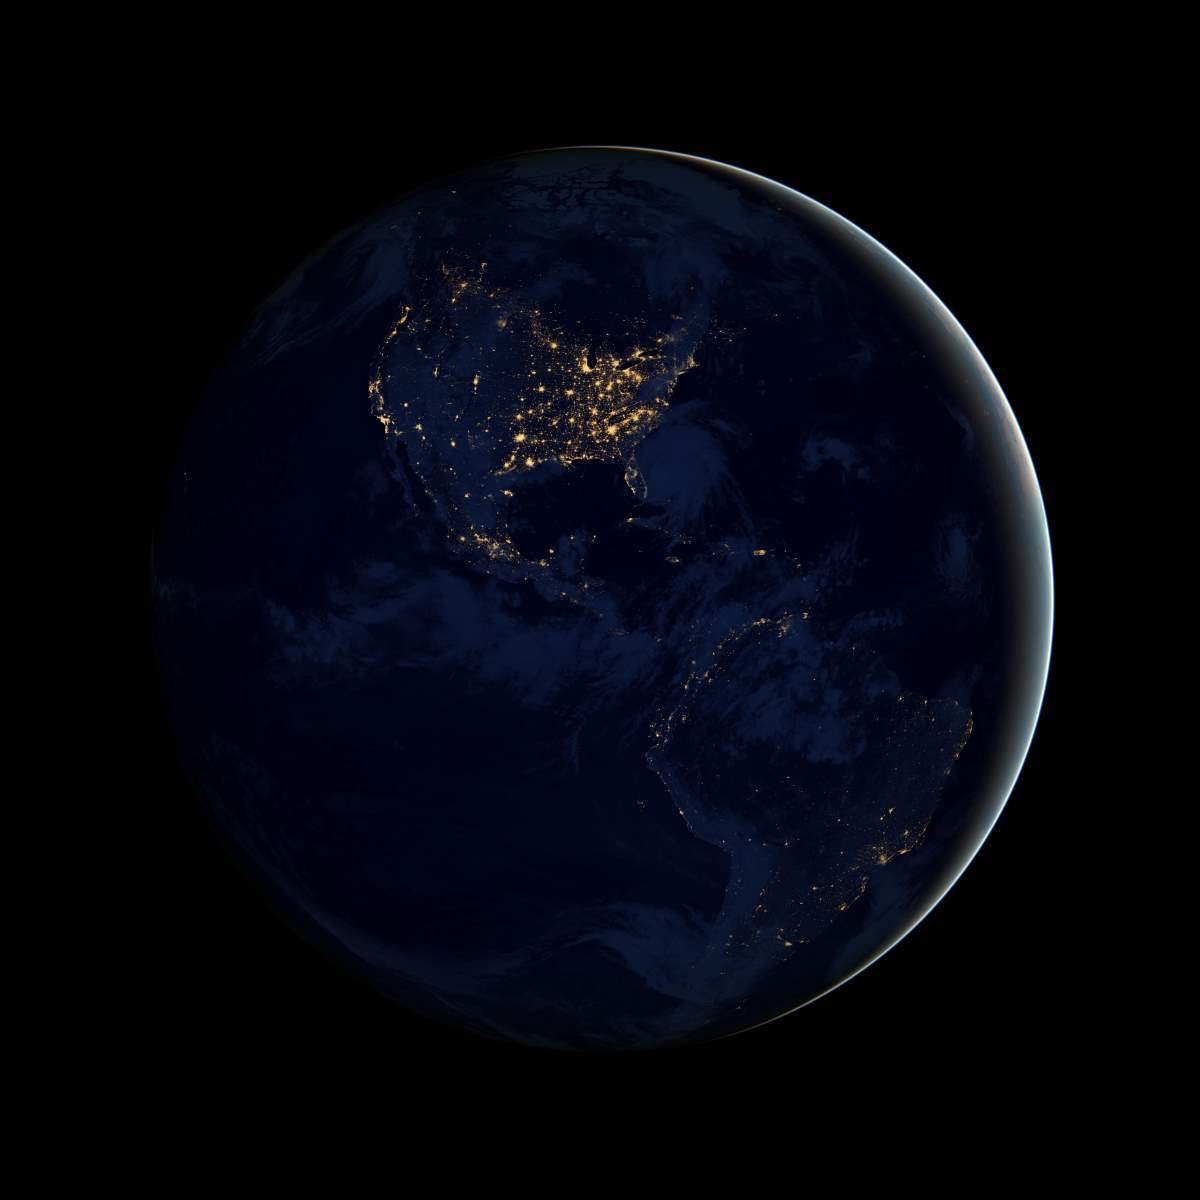 Earth from Space at Night - The Black Marble (Americas)